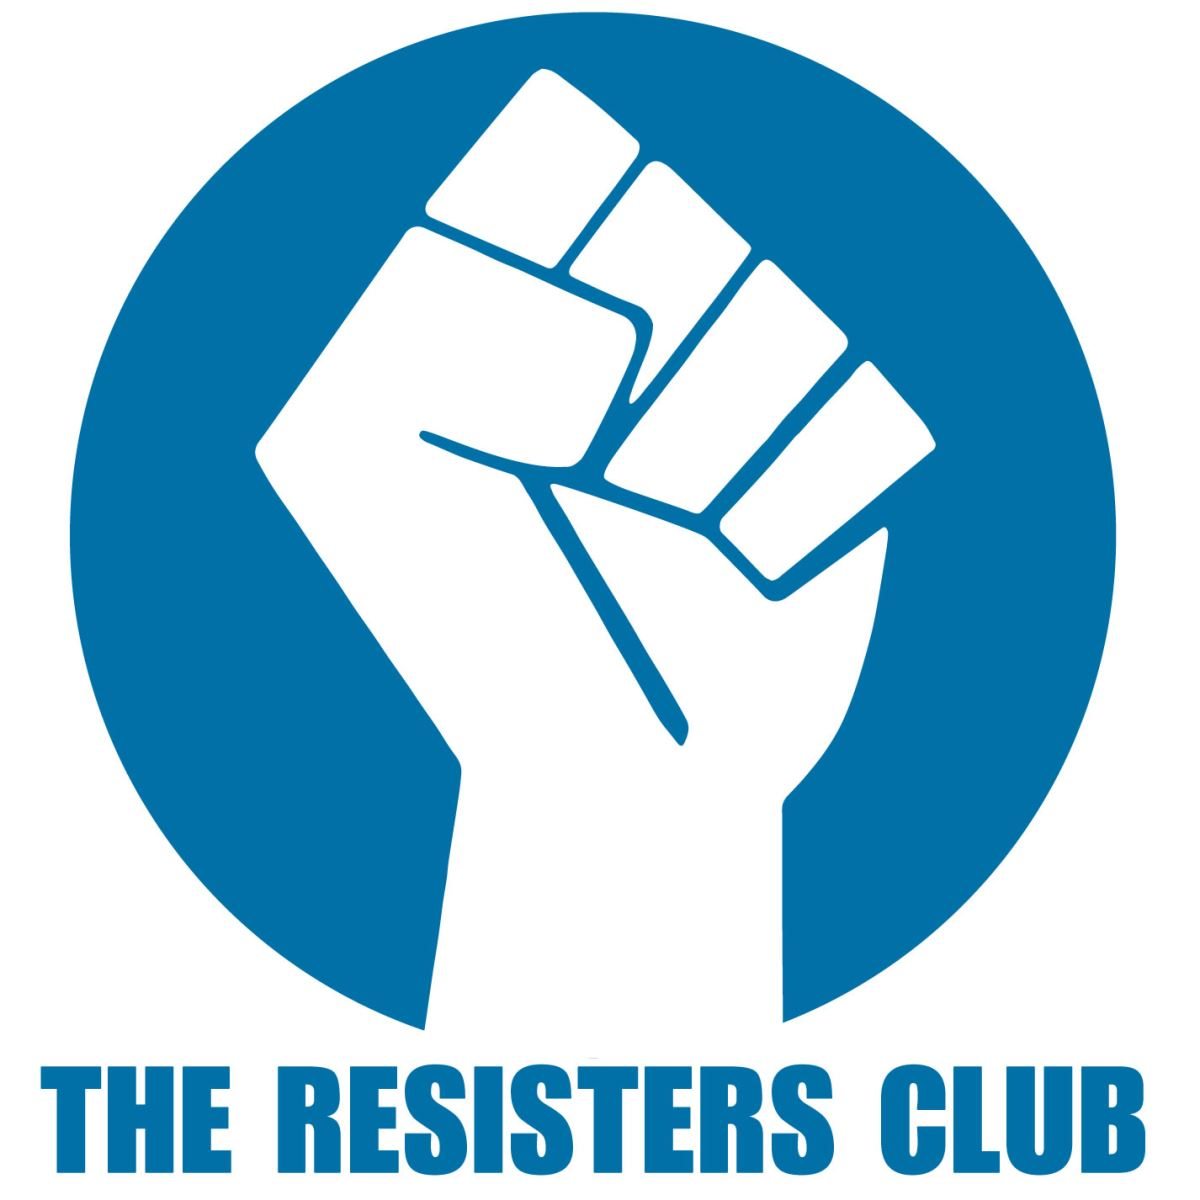 Donate monthly oklahoma democratic party 405 427 3366 as a member of the resisters club your sustaining monthly contribution allows the oklahoma democratic party to invest directly into community organizing biocorpaavc Image collections